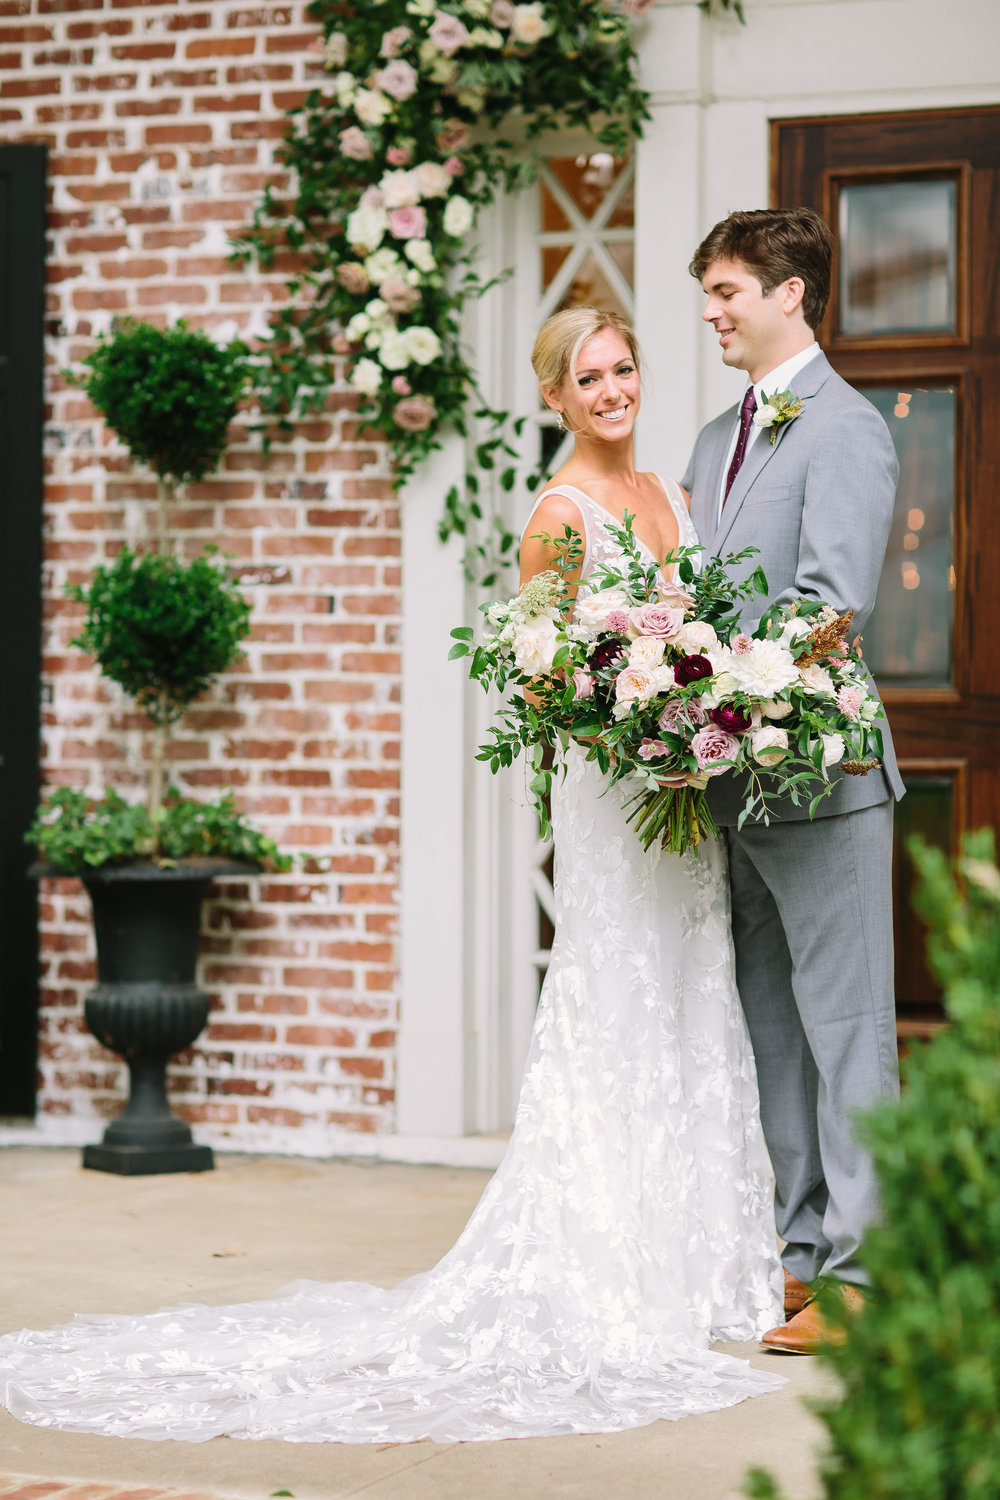 Lush, untamed bridal bouquet in shades of dusty mauve, ivory, blush, and greenery // Nashville Wedding Florist